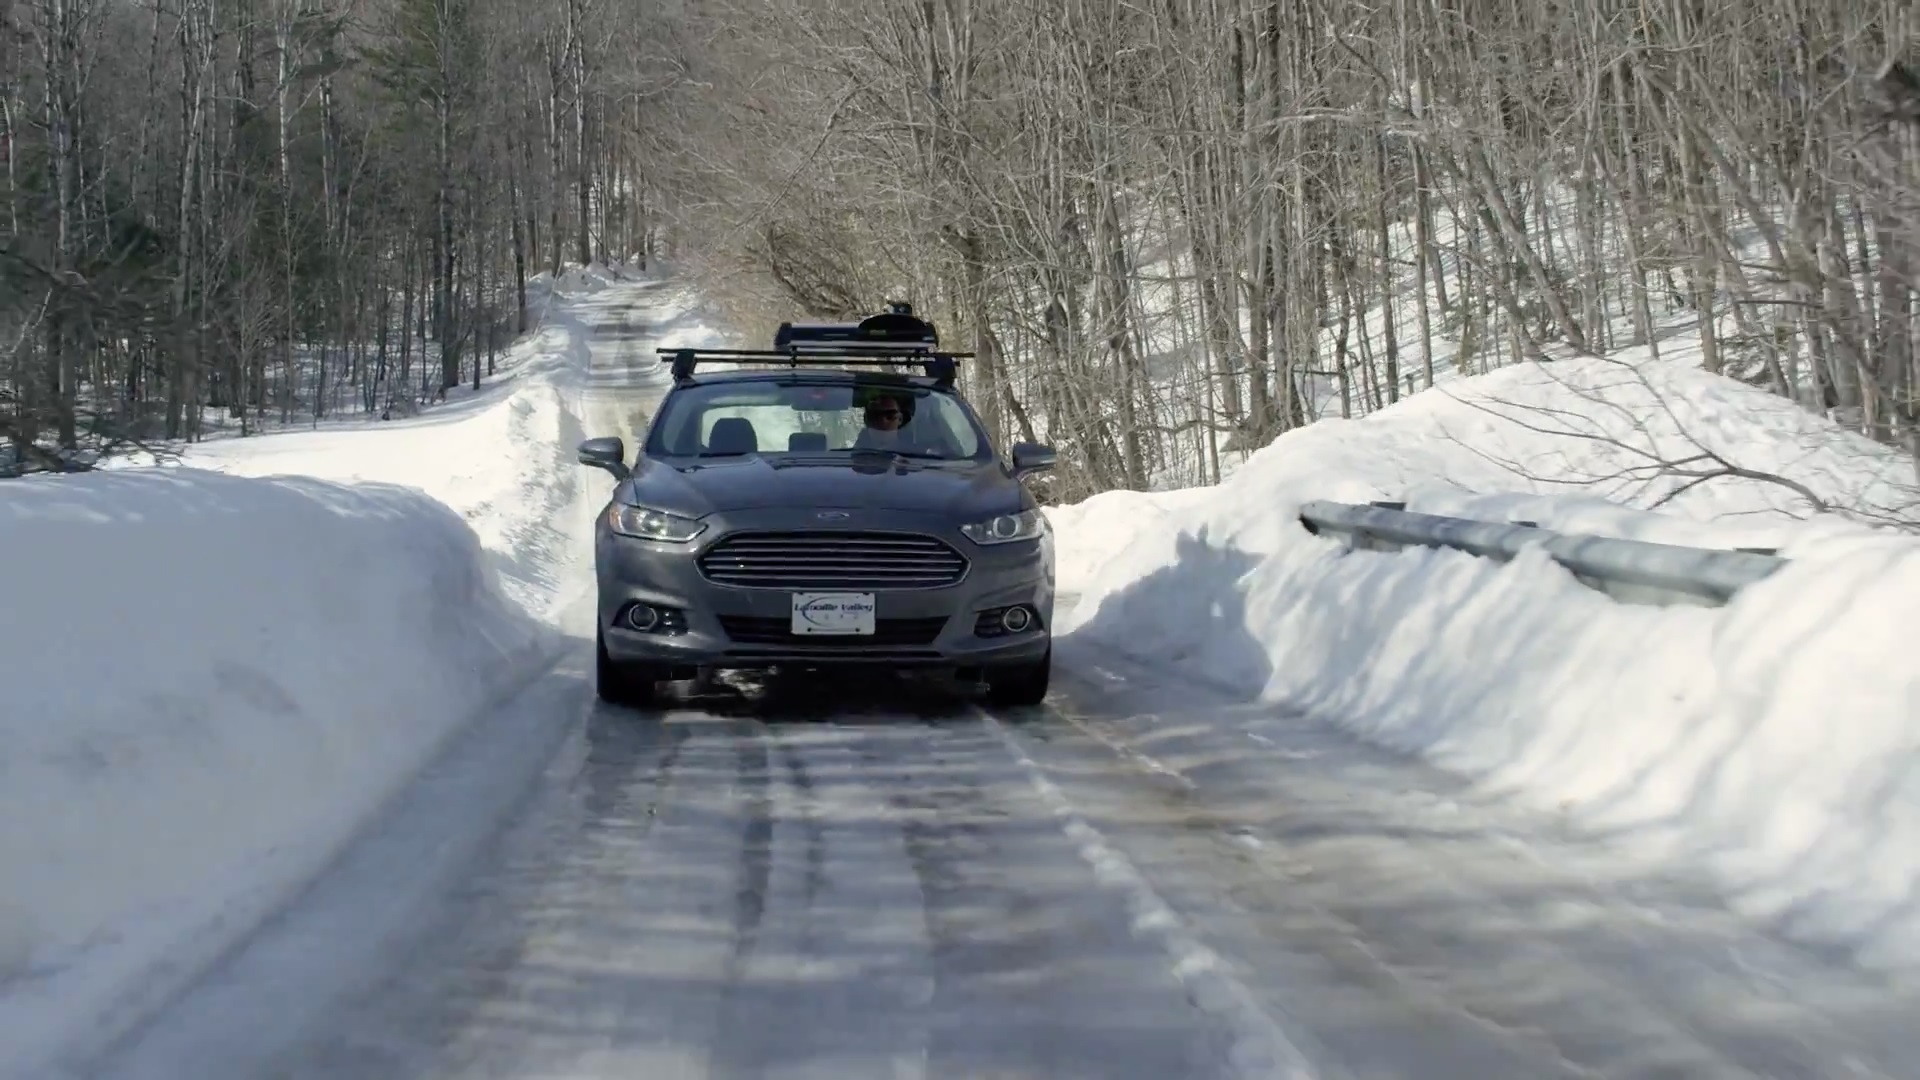 A Ford Fusion On Snowy Road All Photos Courtesy Of Dave Roberts